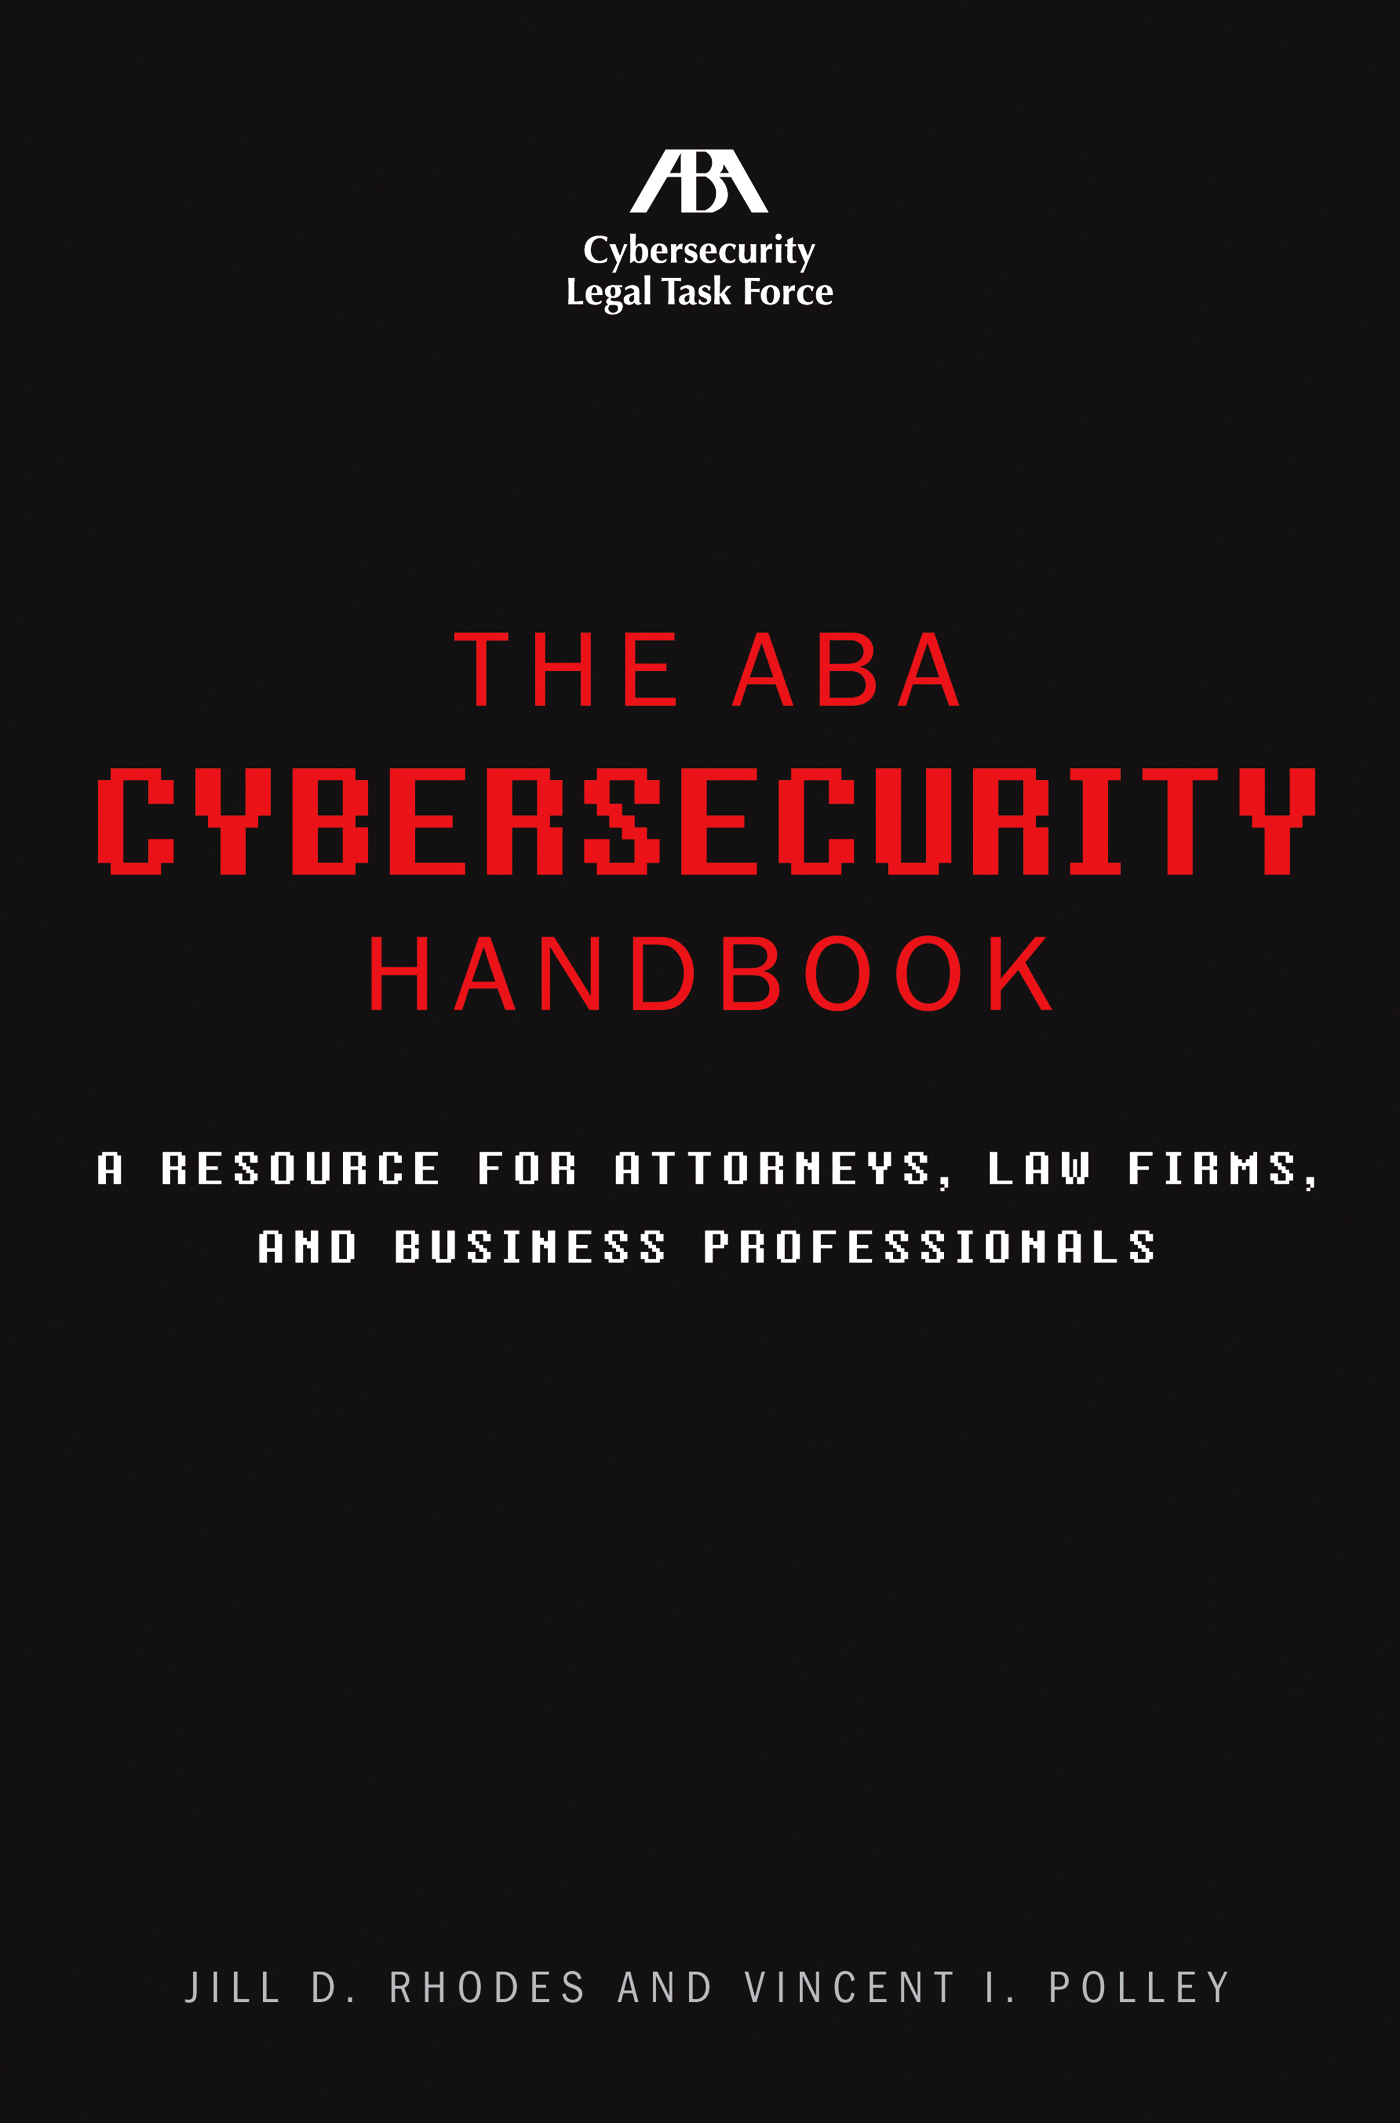 The ABA Cybersecurity Handbook A Resource for Attorneys, Law Firms, and Business Professionals